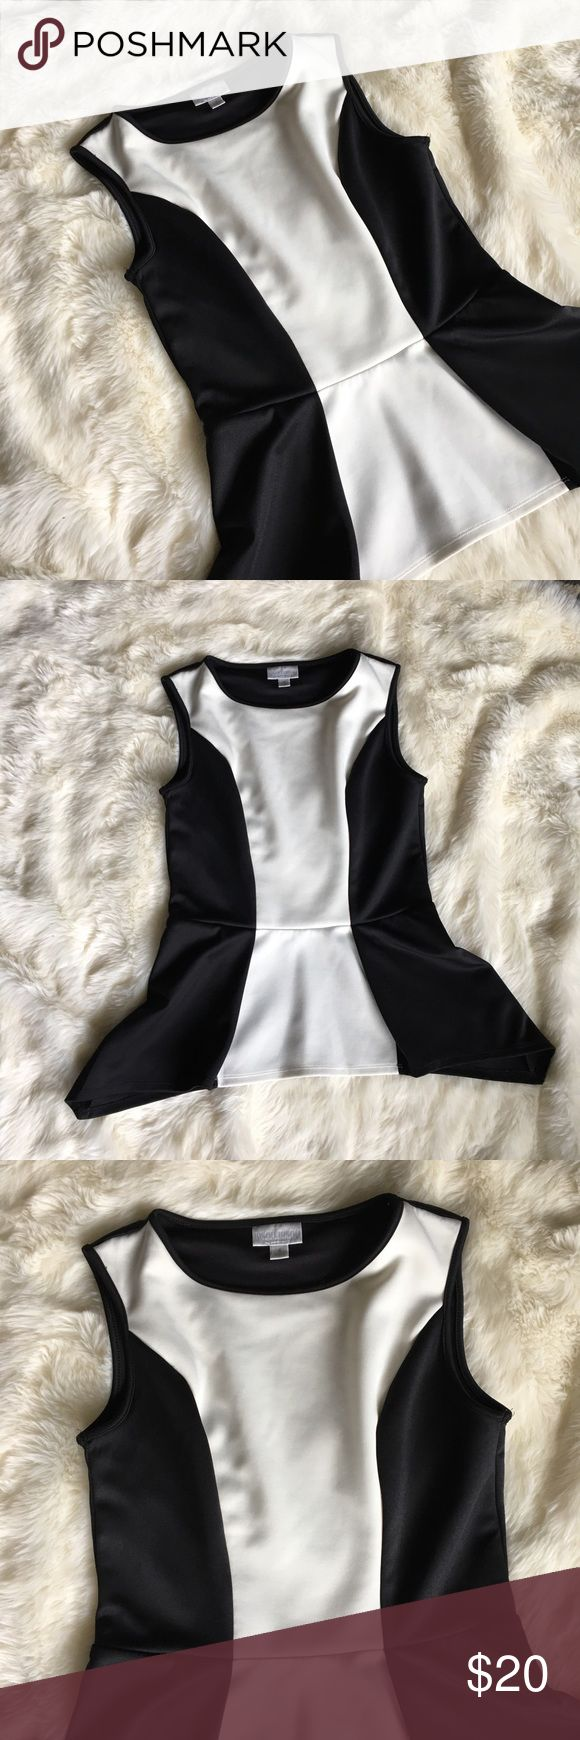 """Bisou Bisou Black & White Peplum Top Black and white peplum top. Excellent condition. No signs of wear.  Made from sanded so it has stretch to it. Perfect for dressing up or down.  Length approx 23.5"""" Chest approx 16"""" Waist approx 14.5"""" Bisou Bisou Tops Tank Tops"""